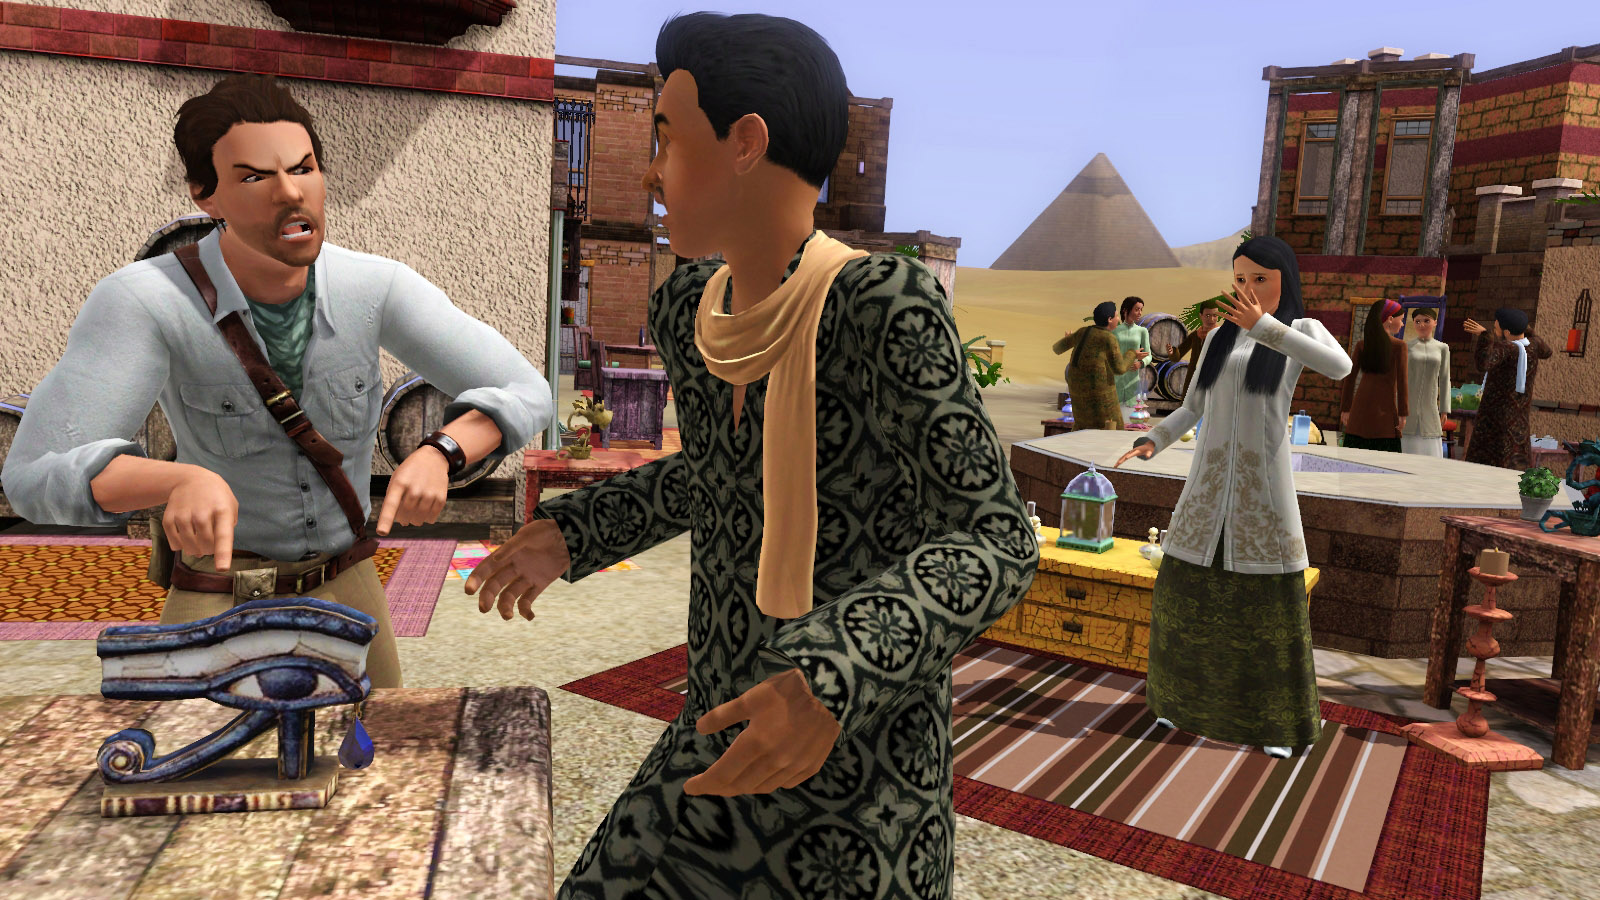 http://www.thesims3.com/content/global/images/news/screen_3_nonwater.jpg